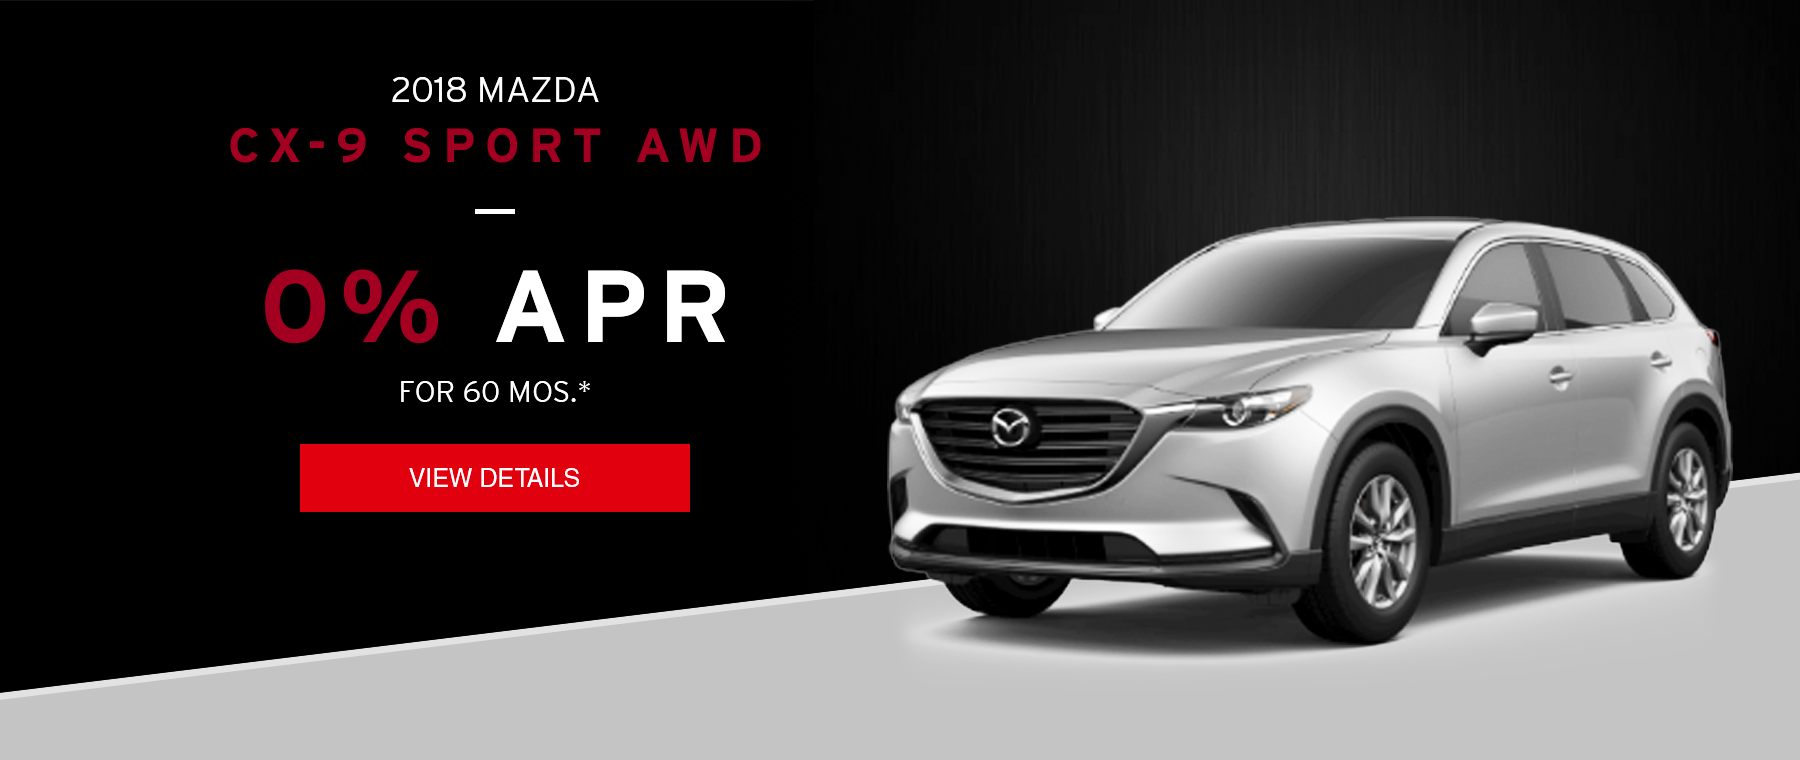 West Hills Mazda CX-9 Special Offer